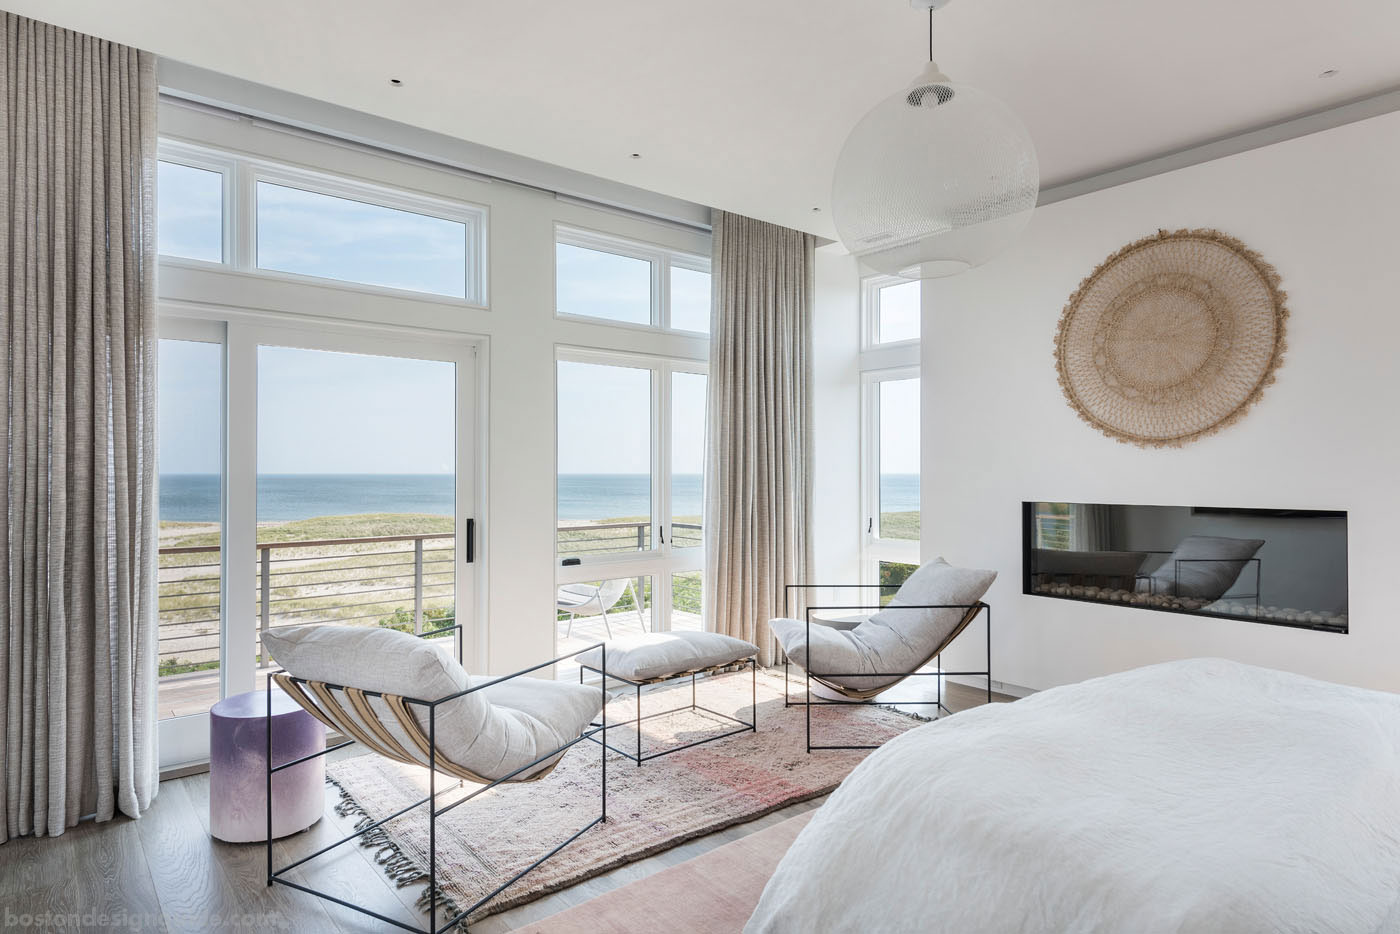 Master bedroom of an organic beach house designed by Lindsay Bentis of Thread by Lindsay Bentis